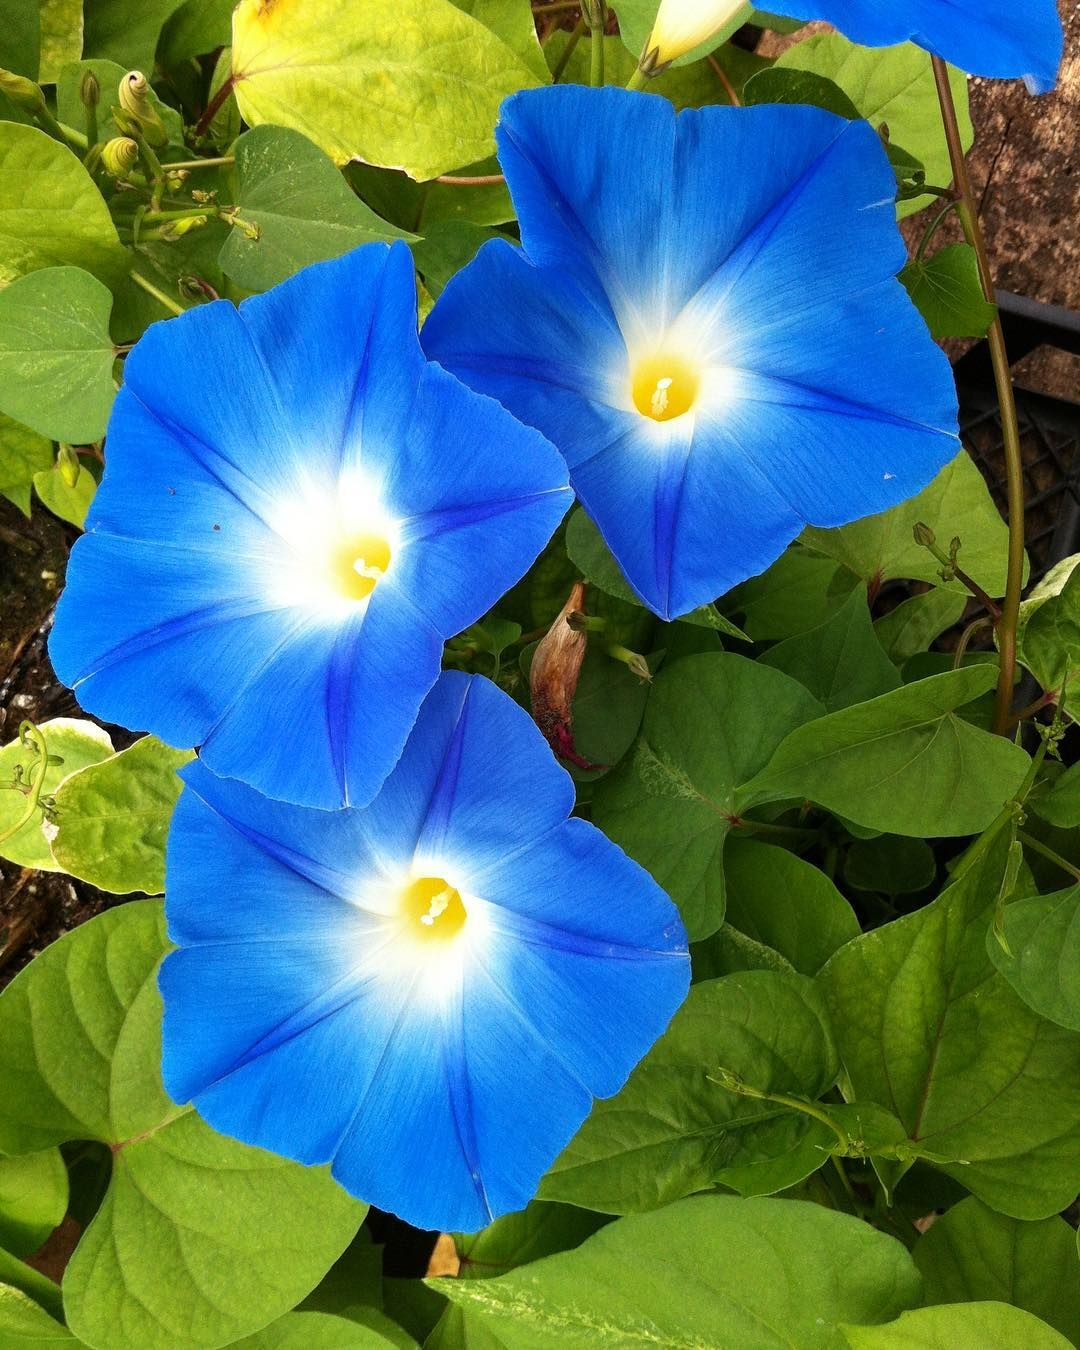 Graceful Gardens On Instagram What S The Story Morning Glory Pictured Heavenly Blue Morning Glory Flowers Garden Vines Blue Morning Glory